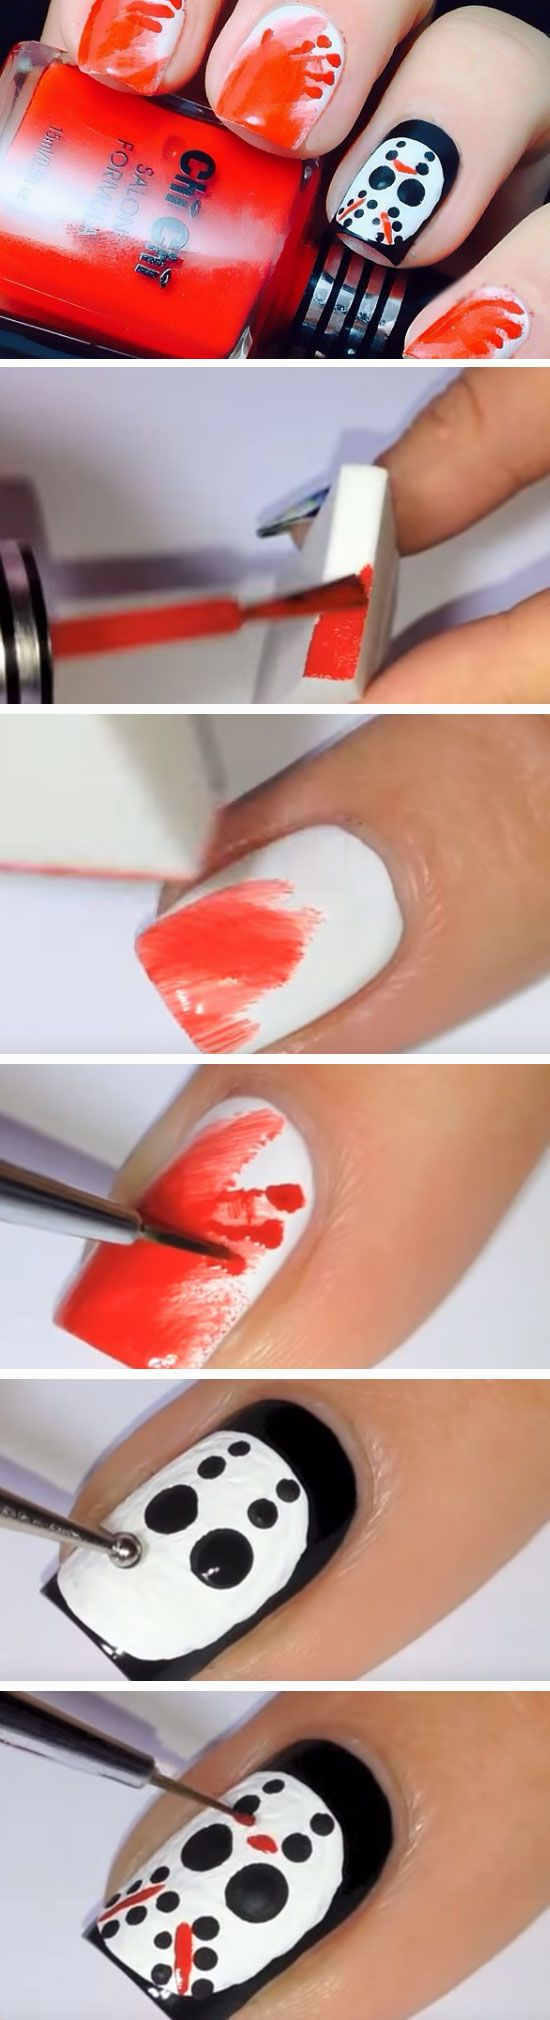 Friday the 13th | 23 Easy Halloween Nail Art Ideas for Teens that are totally spooktastic!